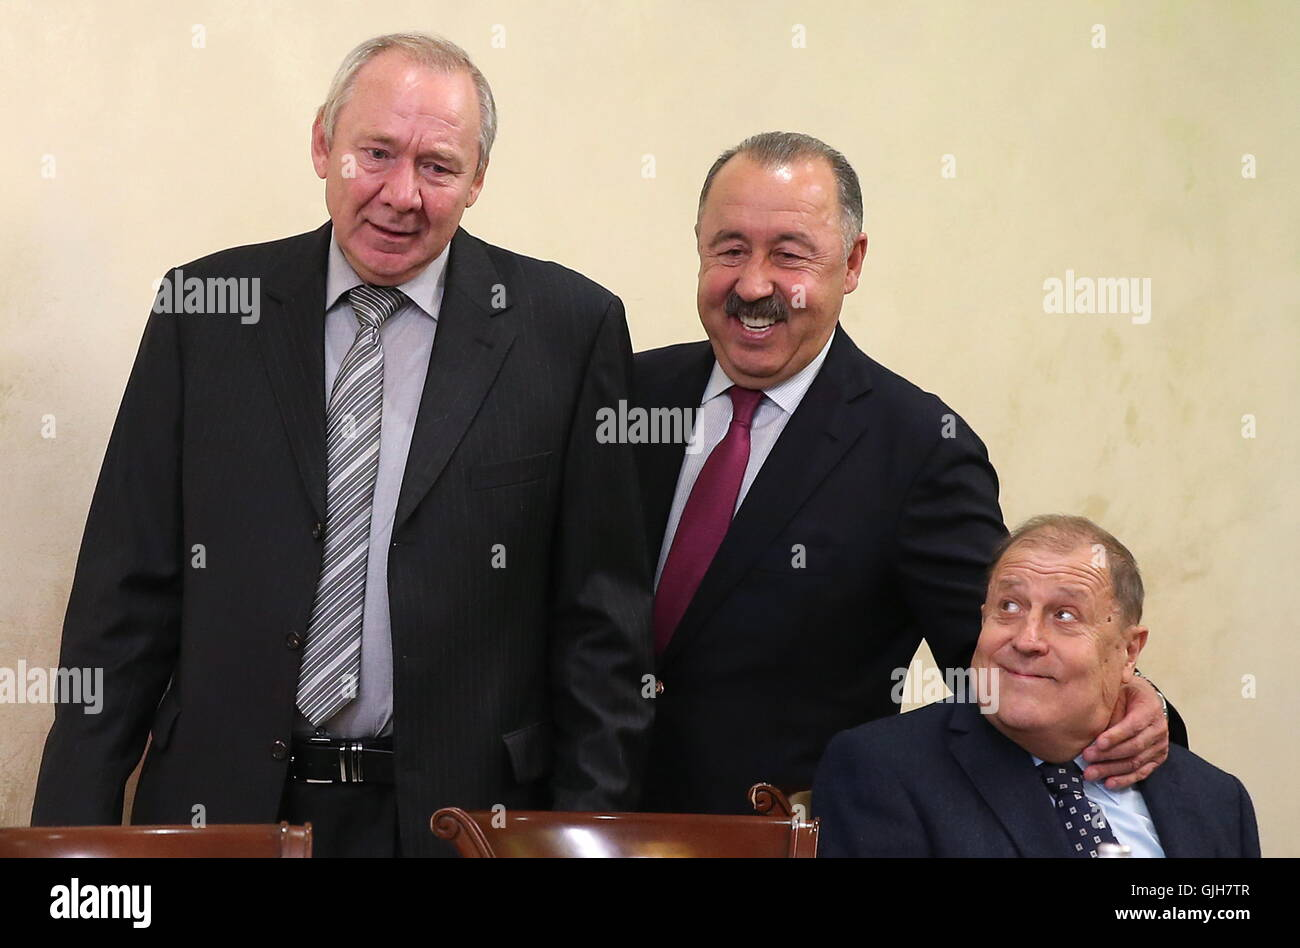 Oleg Romantsev: the history of a football player and coach 35